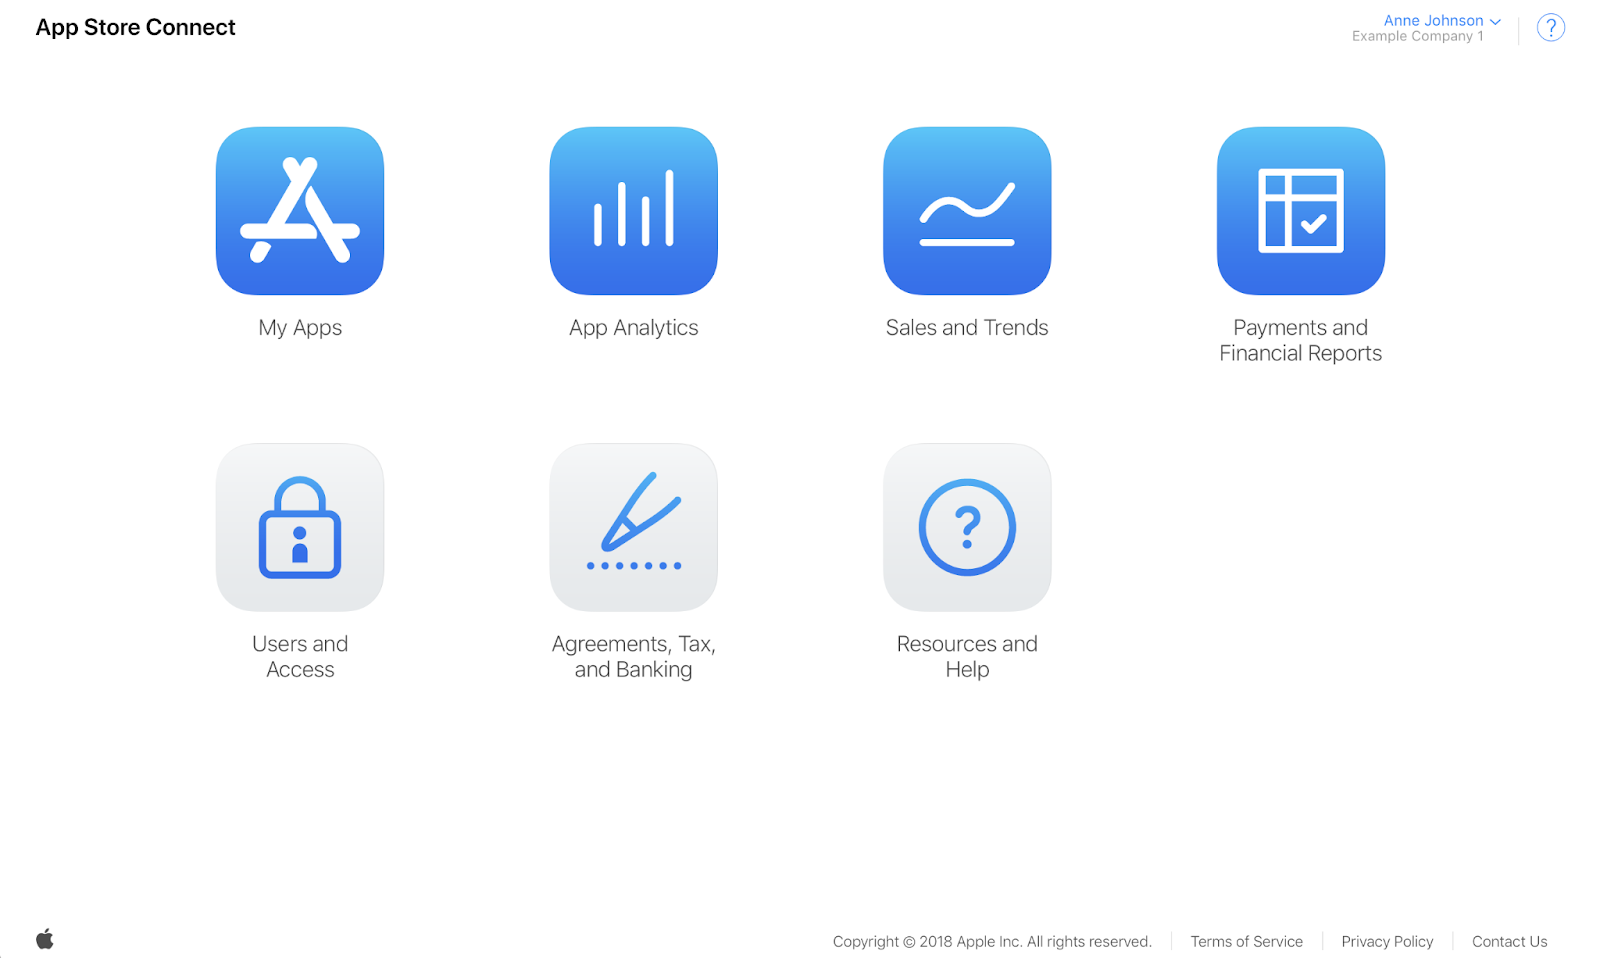 The App Store Connect portal dashboard.